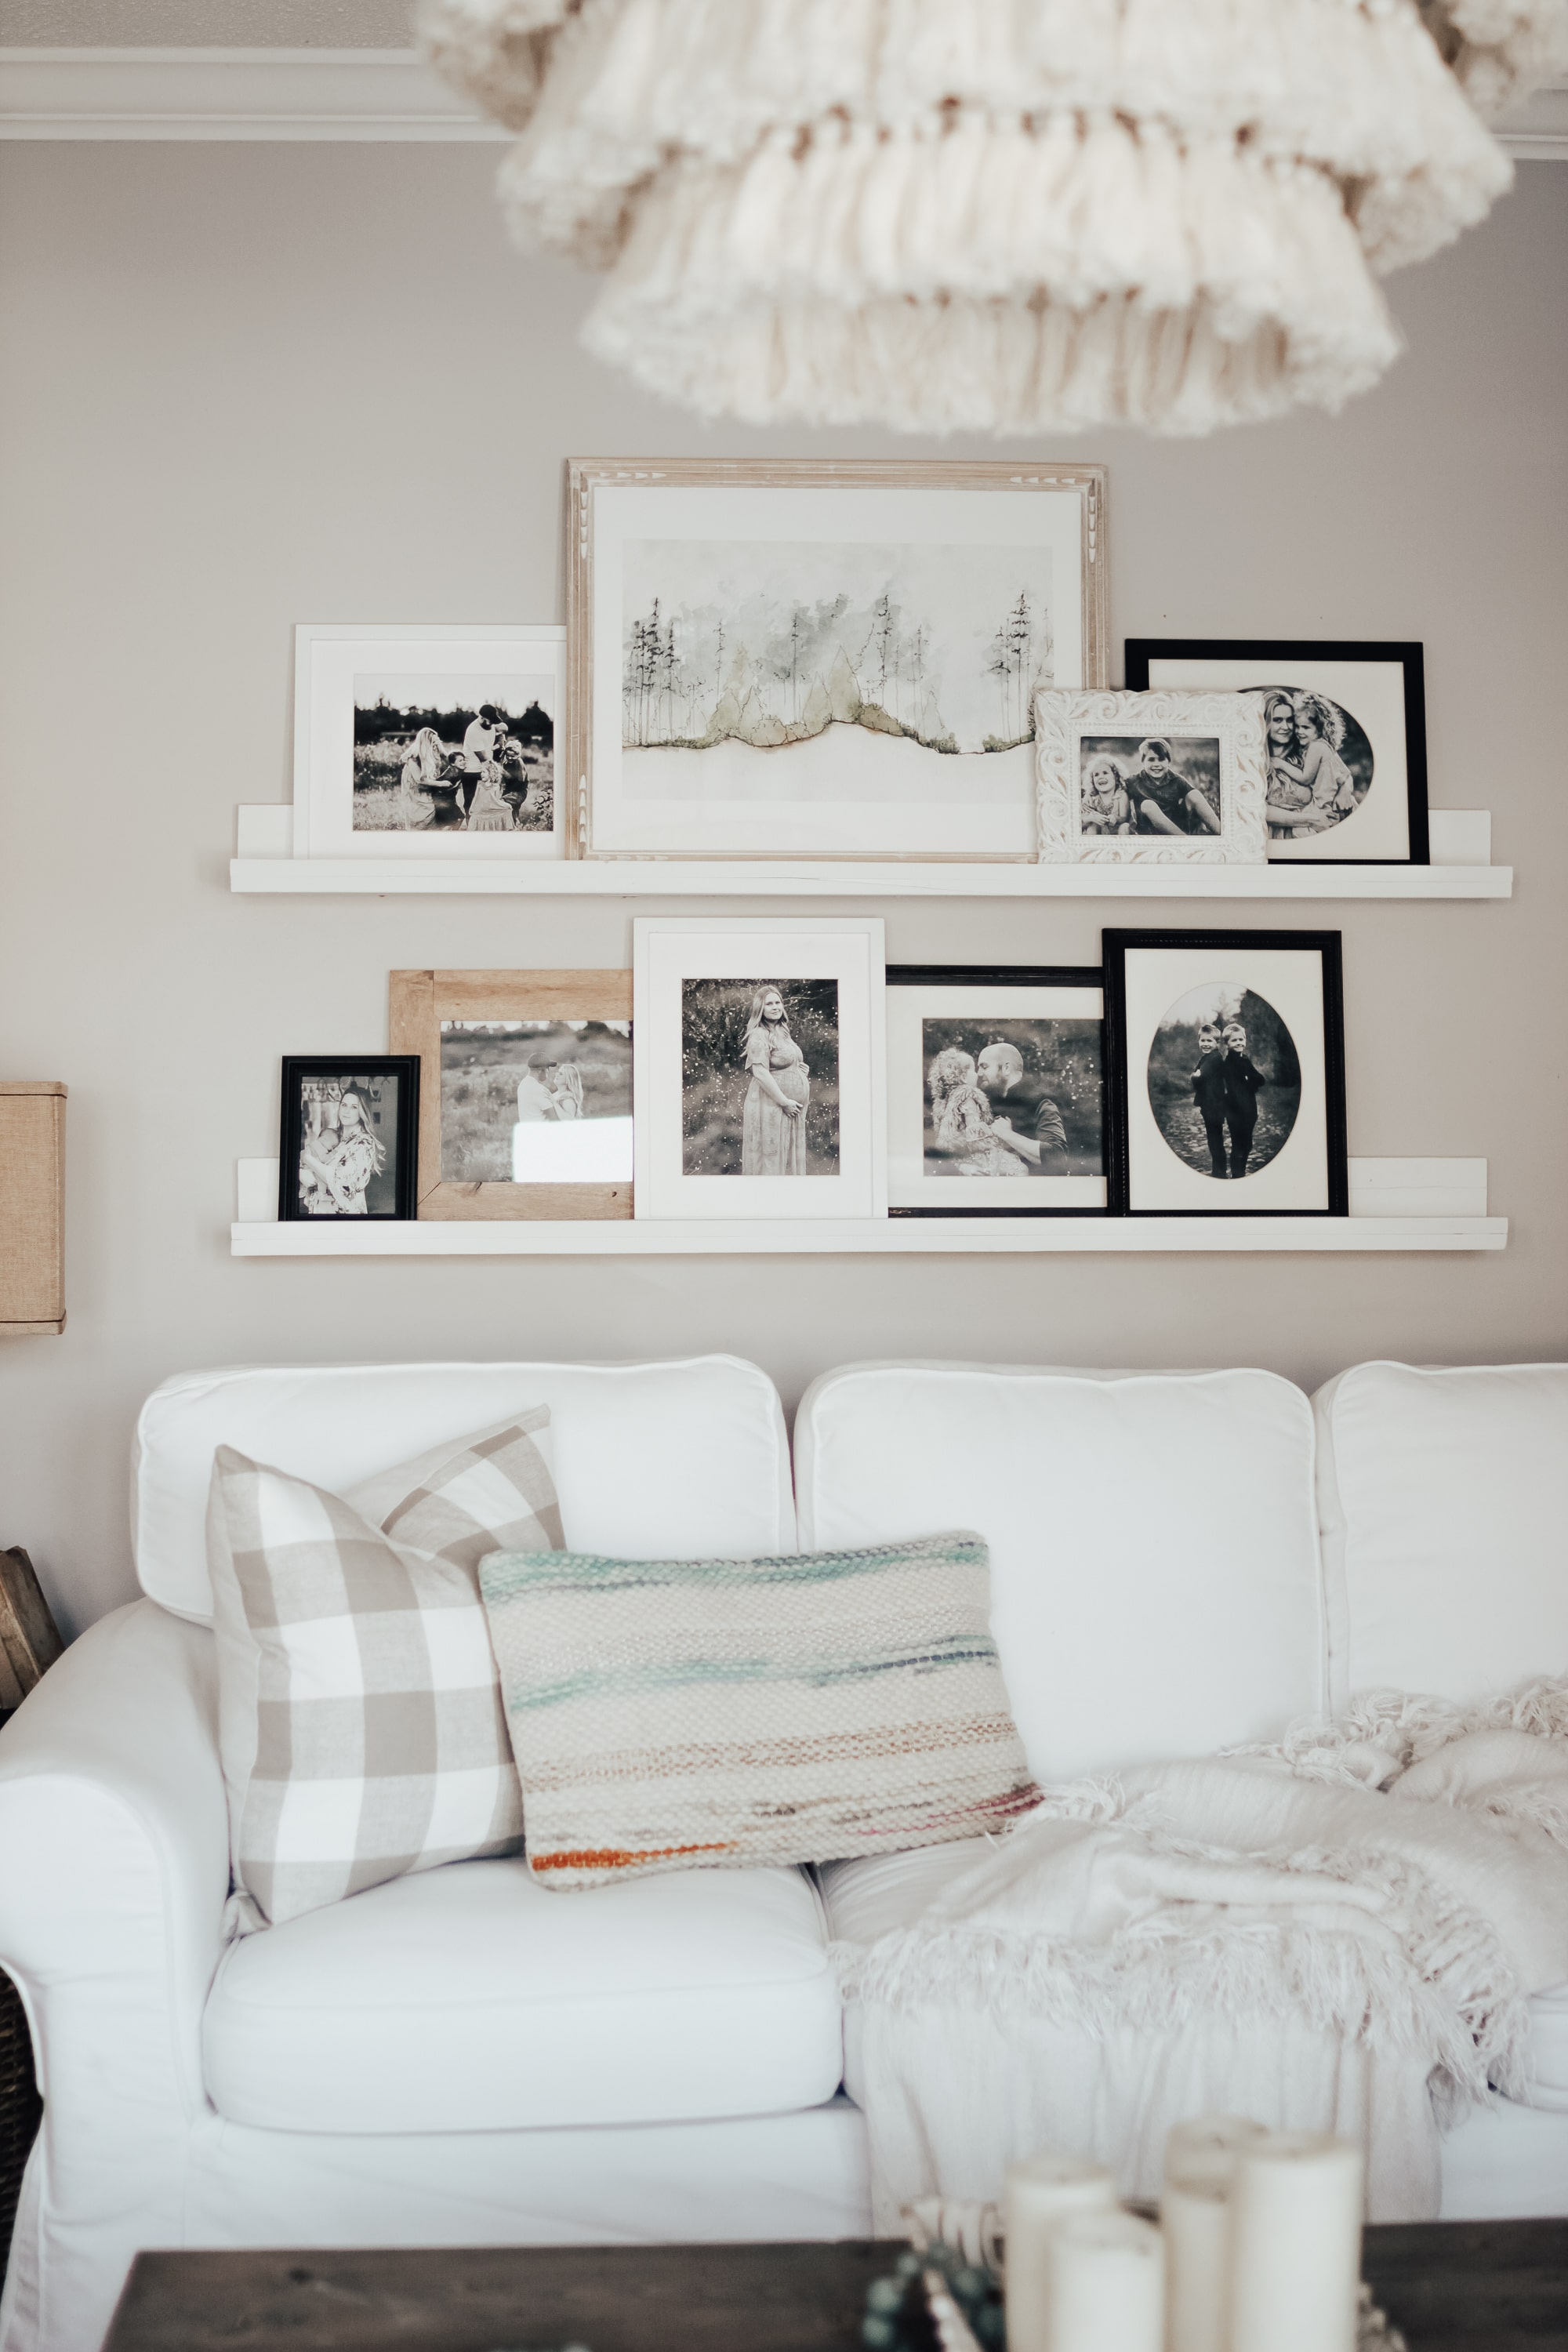 Bohemian Vibes With Minted. How to Transform Your Space with Art